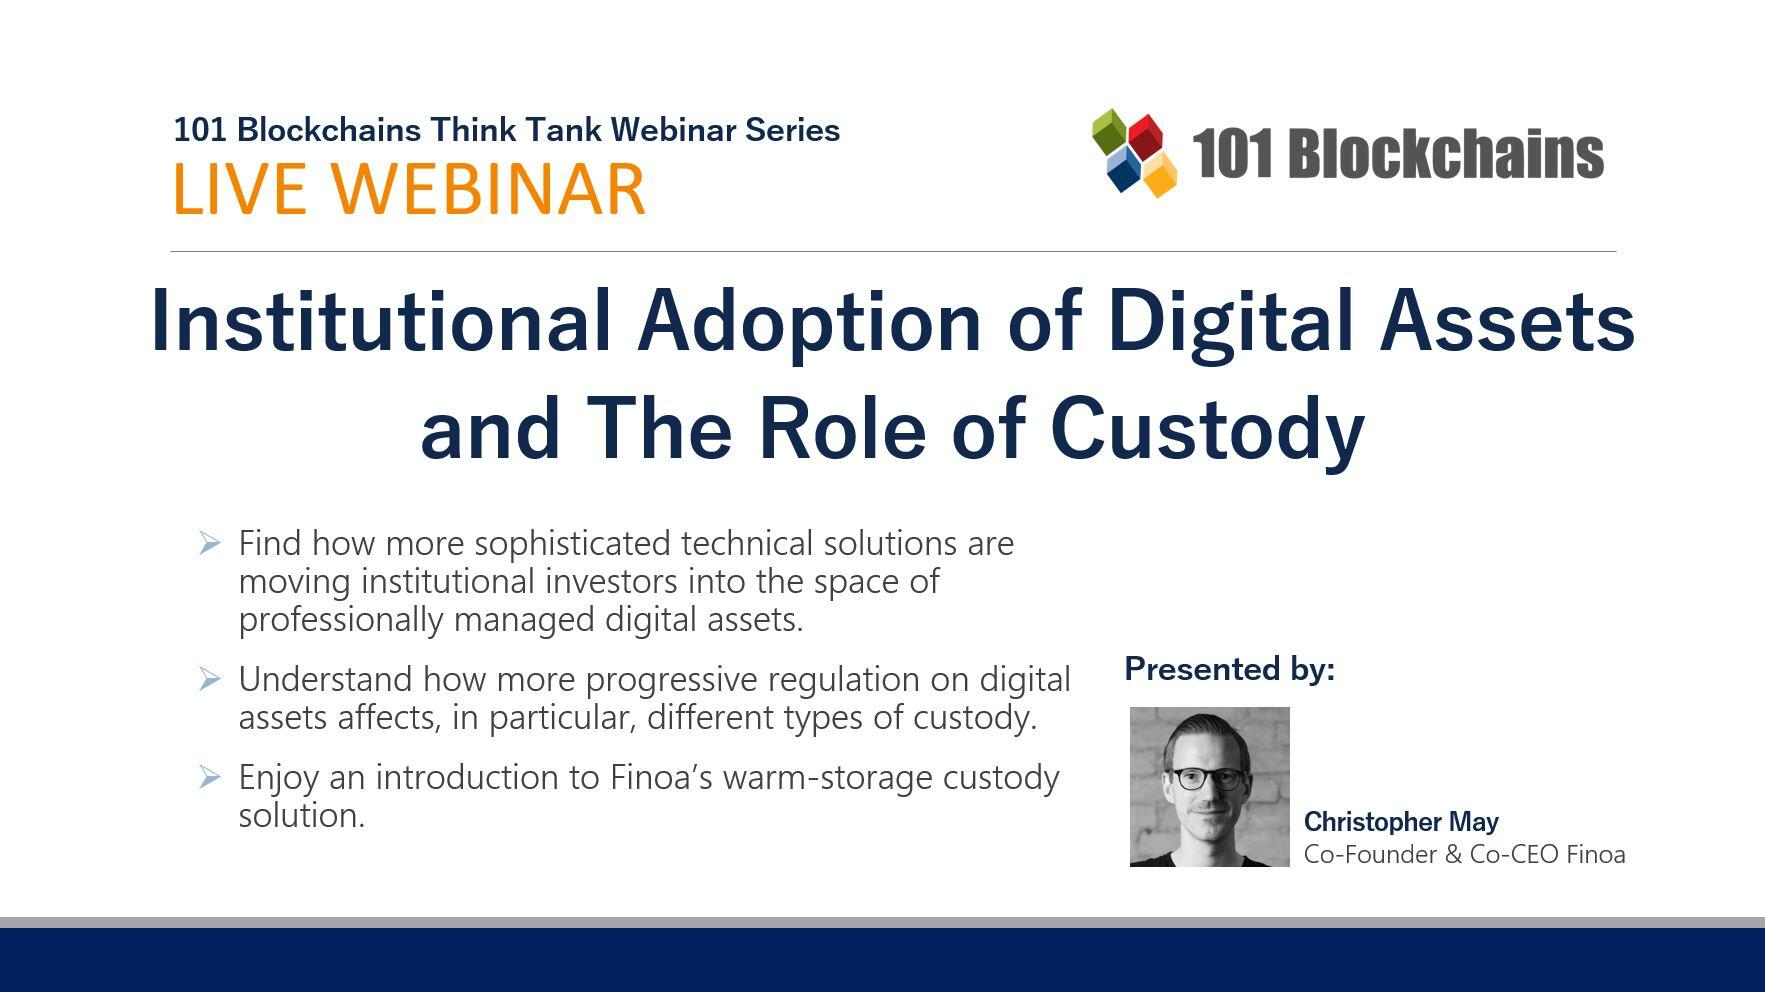 Institutional Adoption of Digital Assets and The Role of Custody webinar